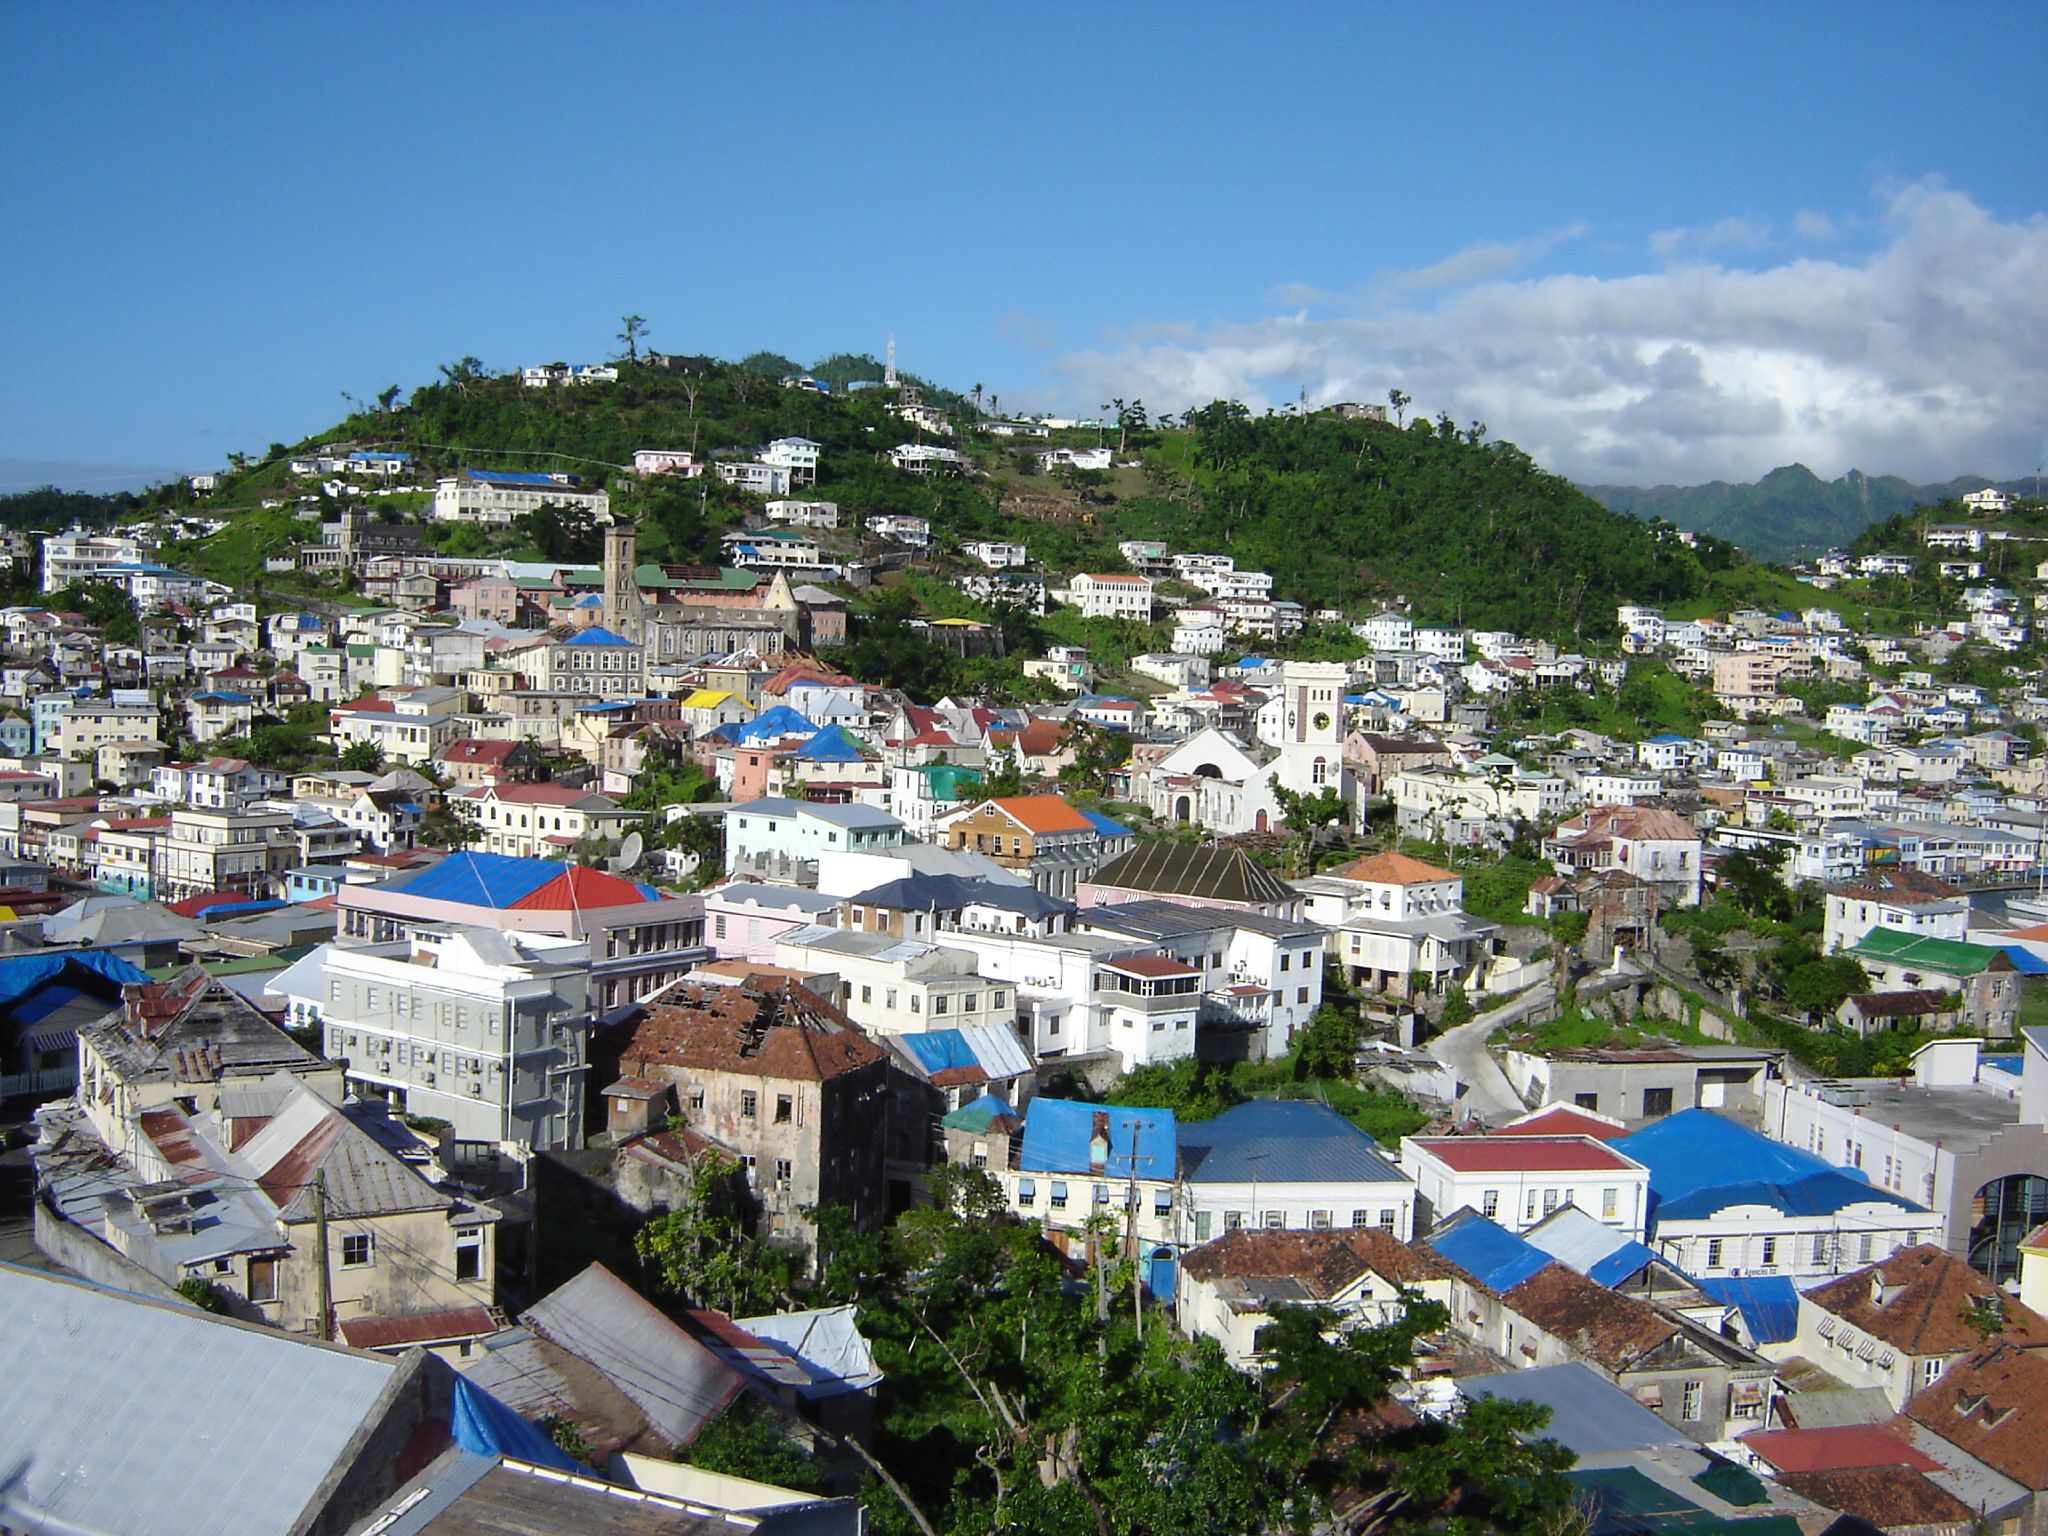 Coping with disasters: advancing disaster risk financing strategies in the Caribbean